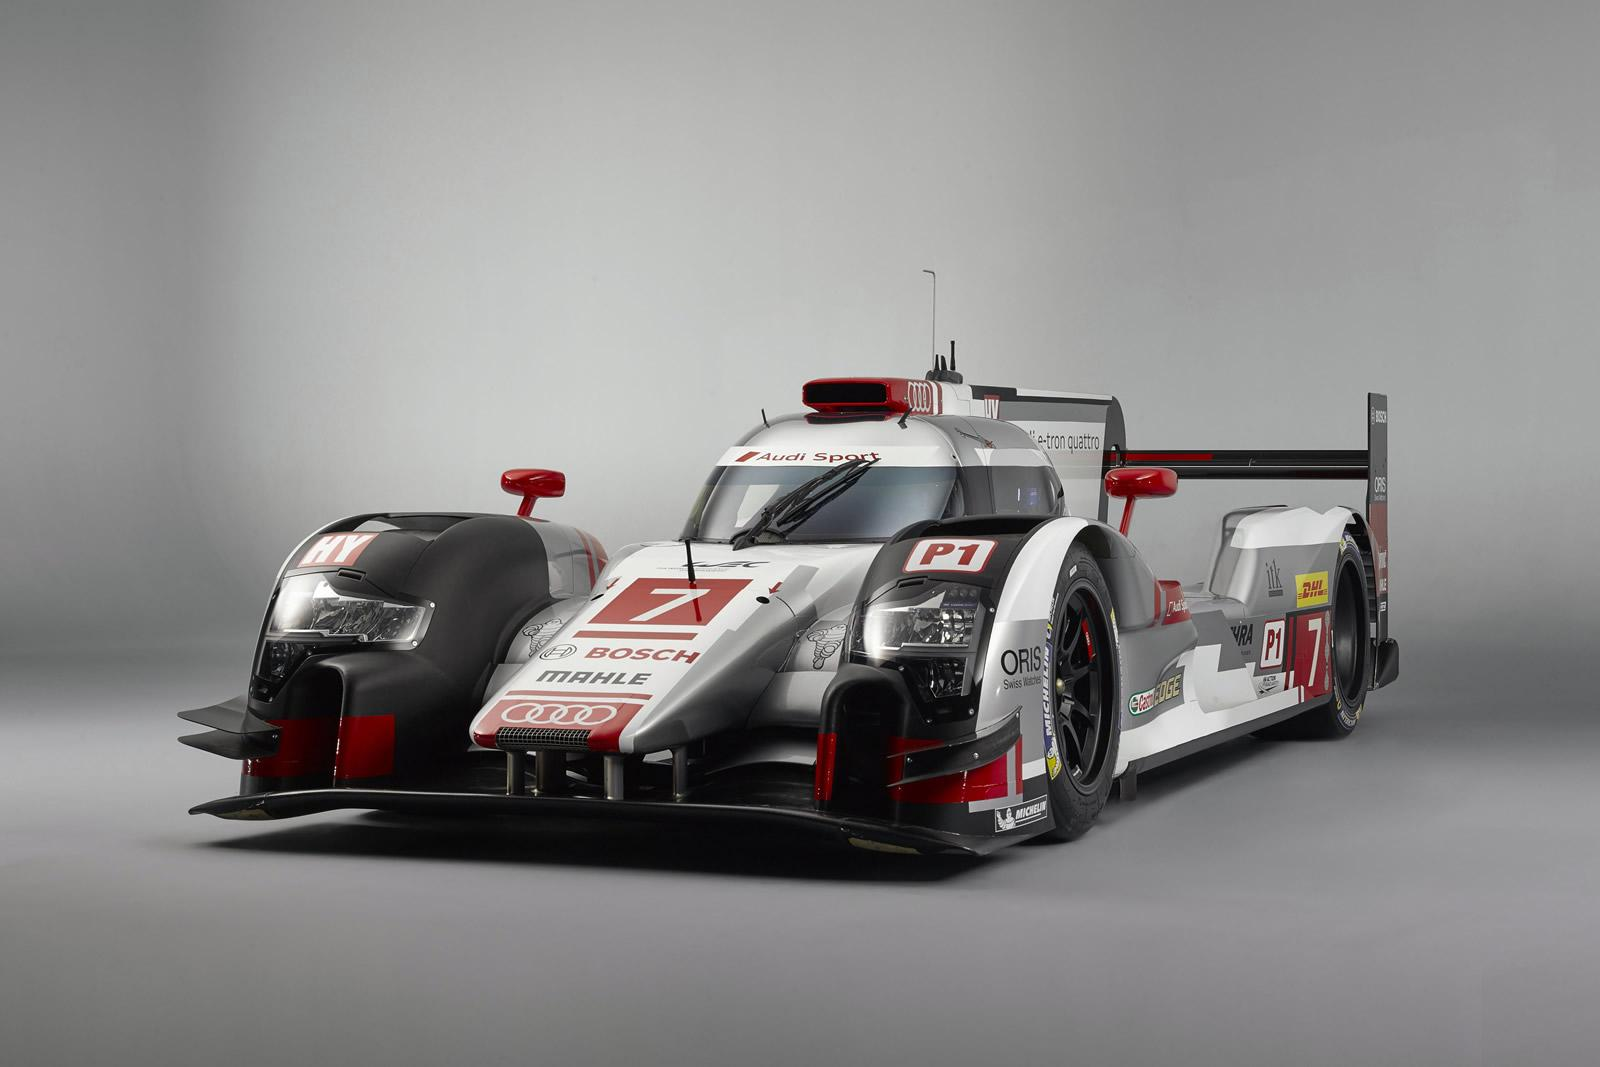 Audi Reportedly Ditching Wec In Favour Of F1 For 2018 Gtspirit